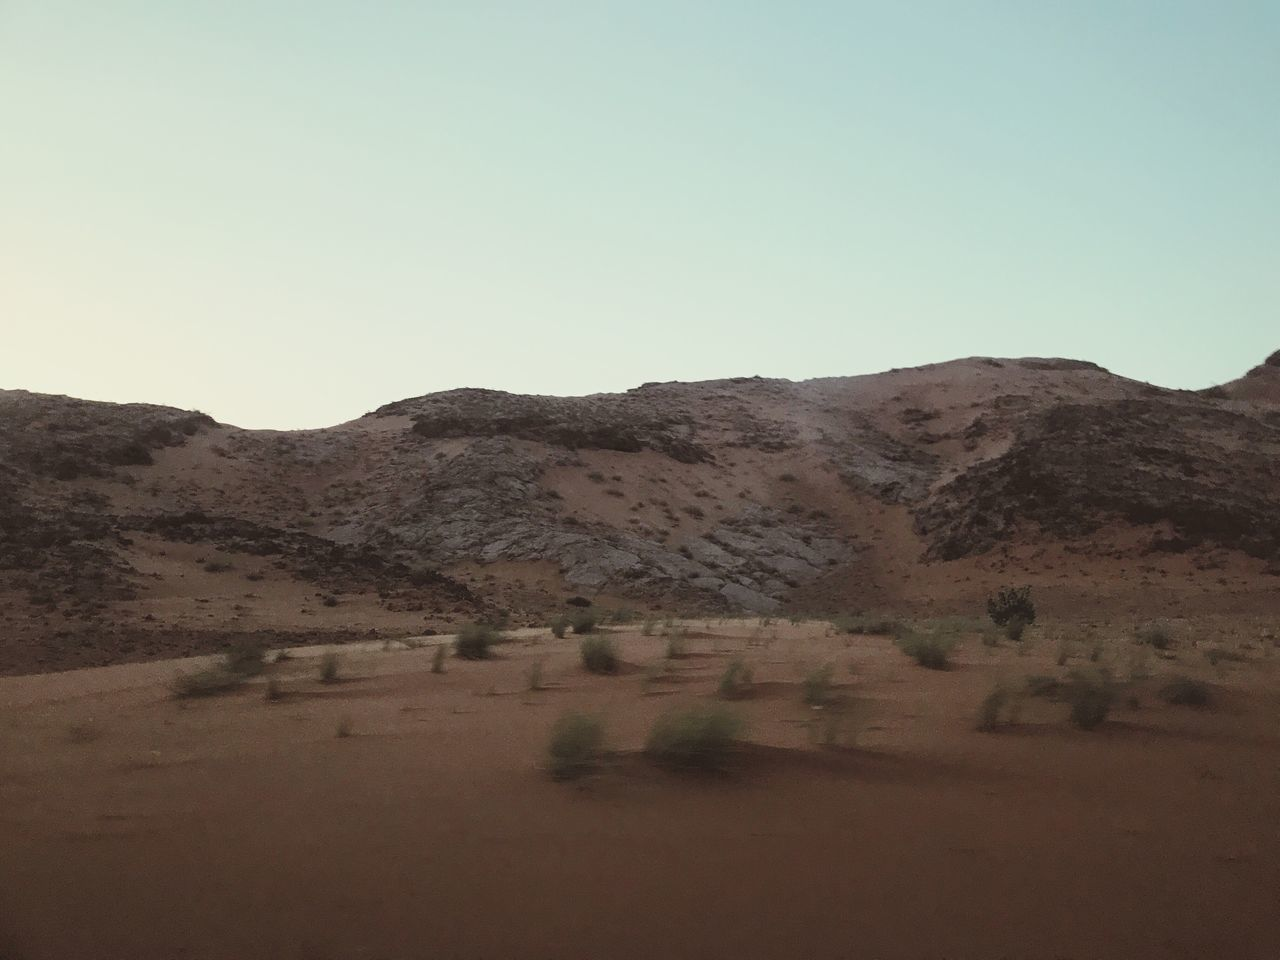 The Great Outdoors - 2017 EyeEm Awards Clear Sky Mountain Nature Desert Tranquility Tranquil Scene Scenics Copy Space Landscape Arid Climate Beauty In Nature Day Outdoors No People Mountain Range Sand Sky Sand Dune